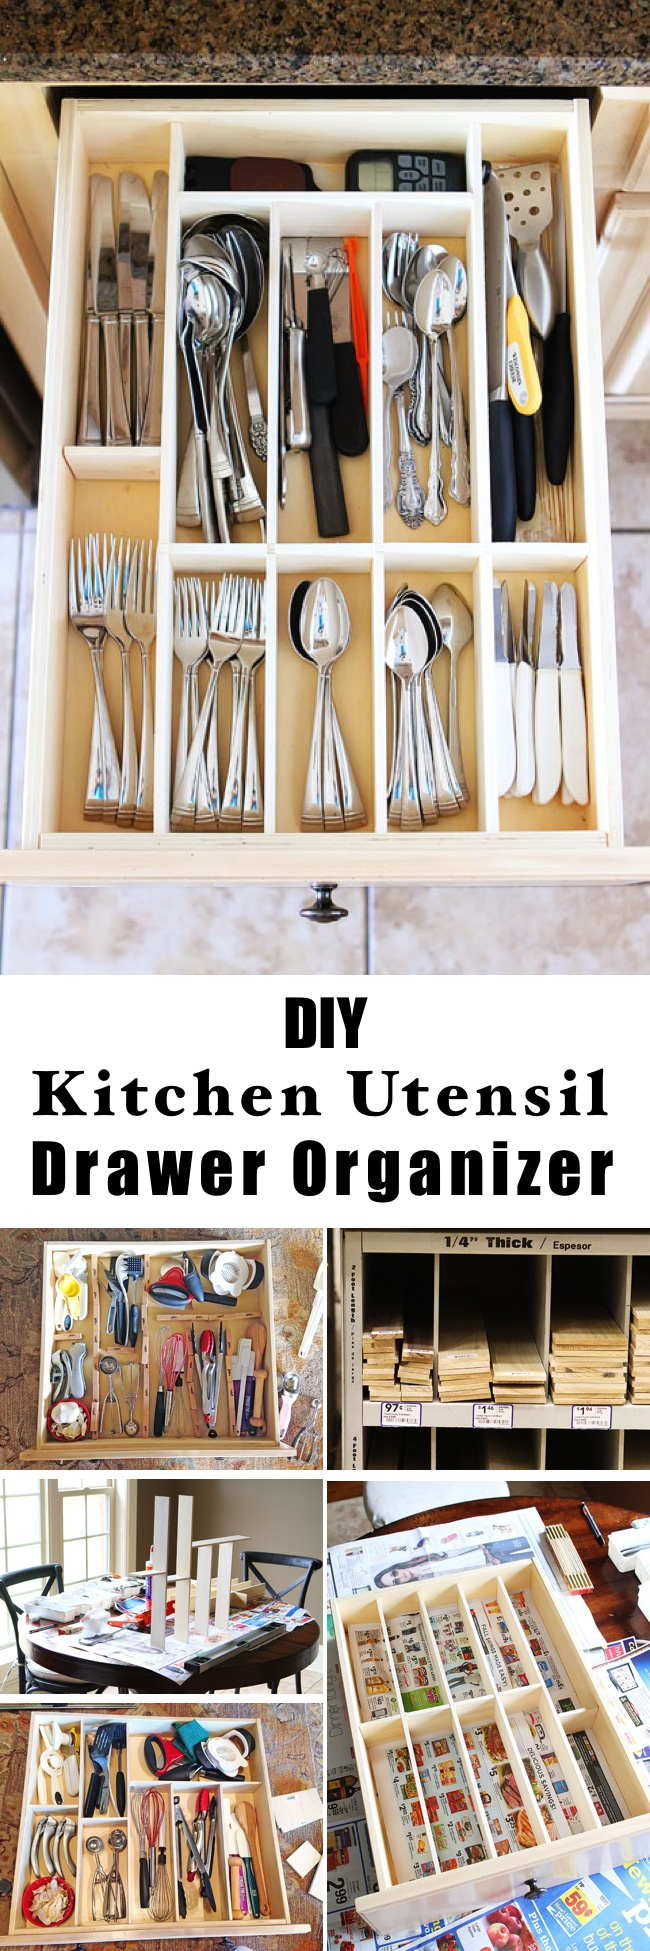 organizing drawer kitchen alert organizer pin curb chaos drawers flatware updating